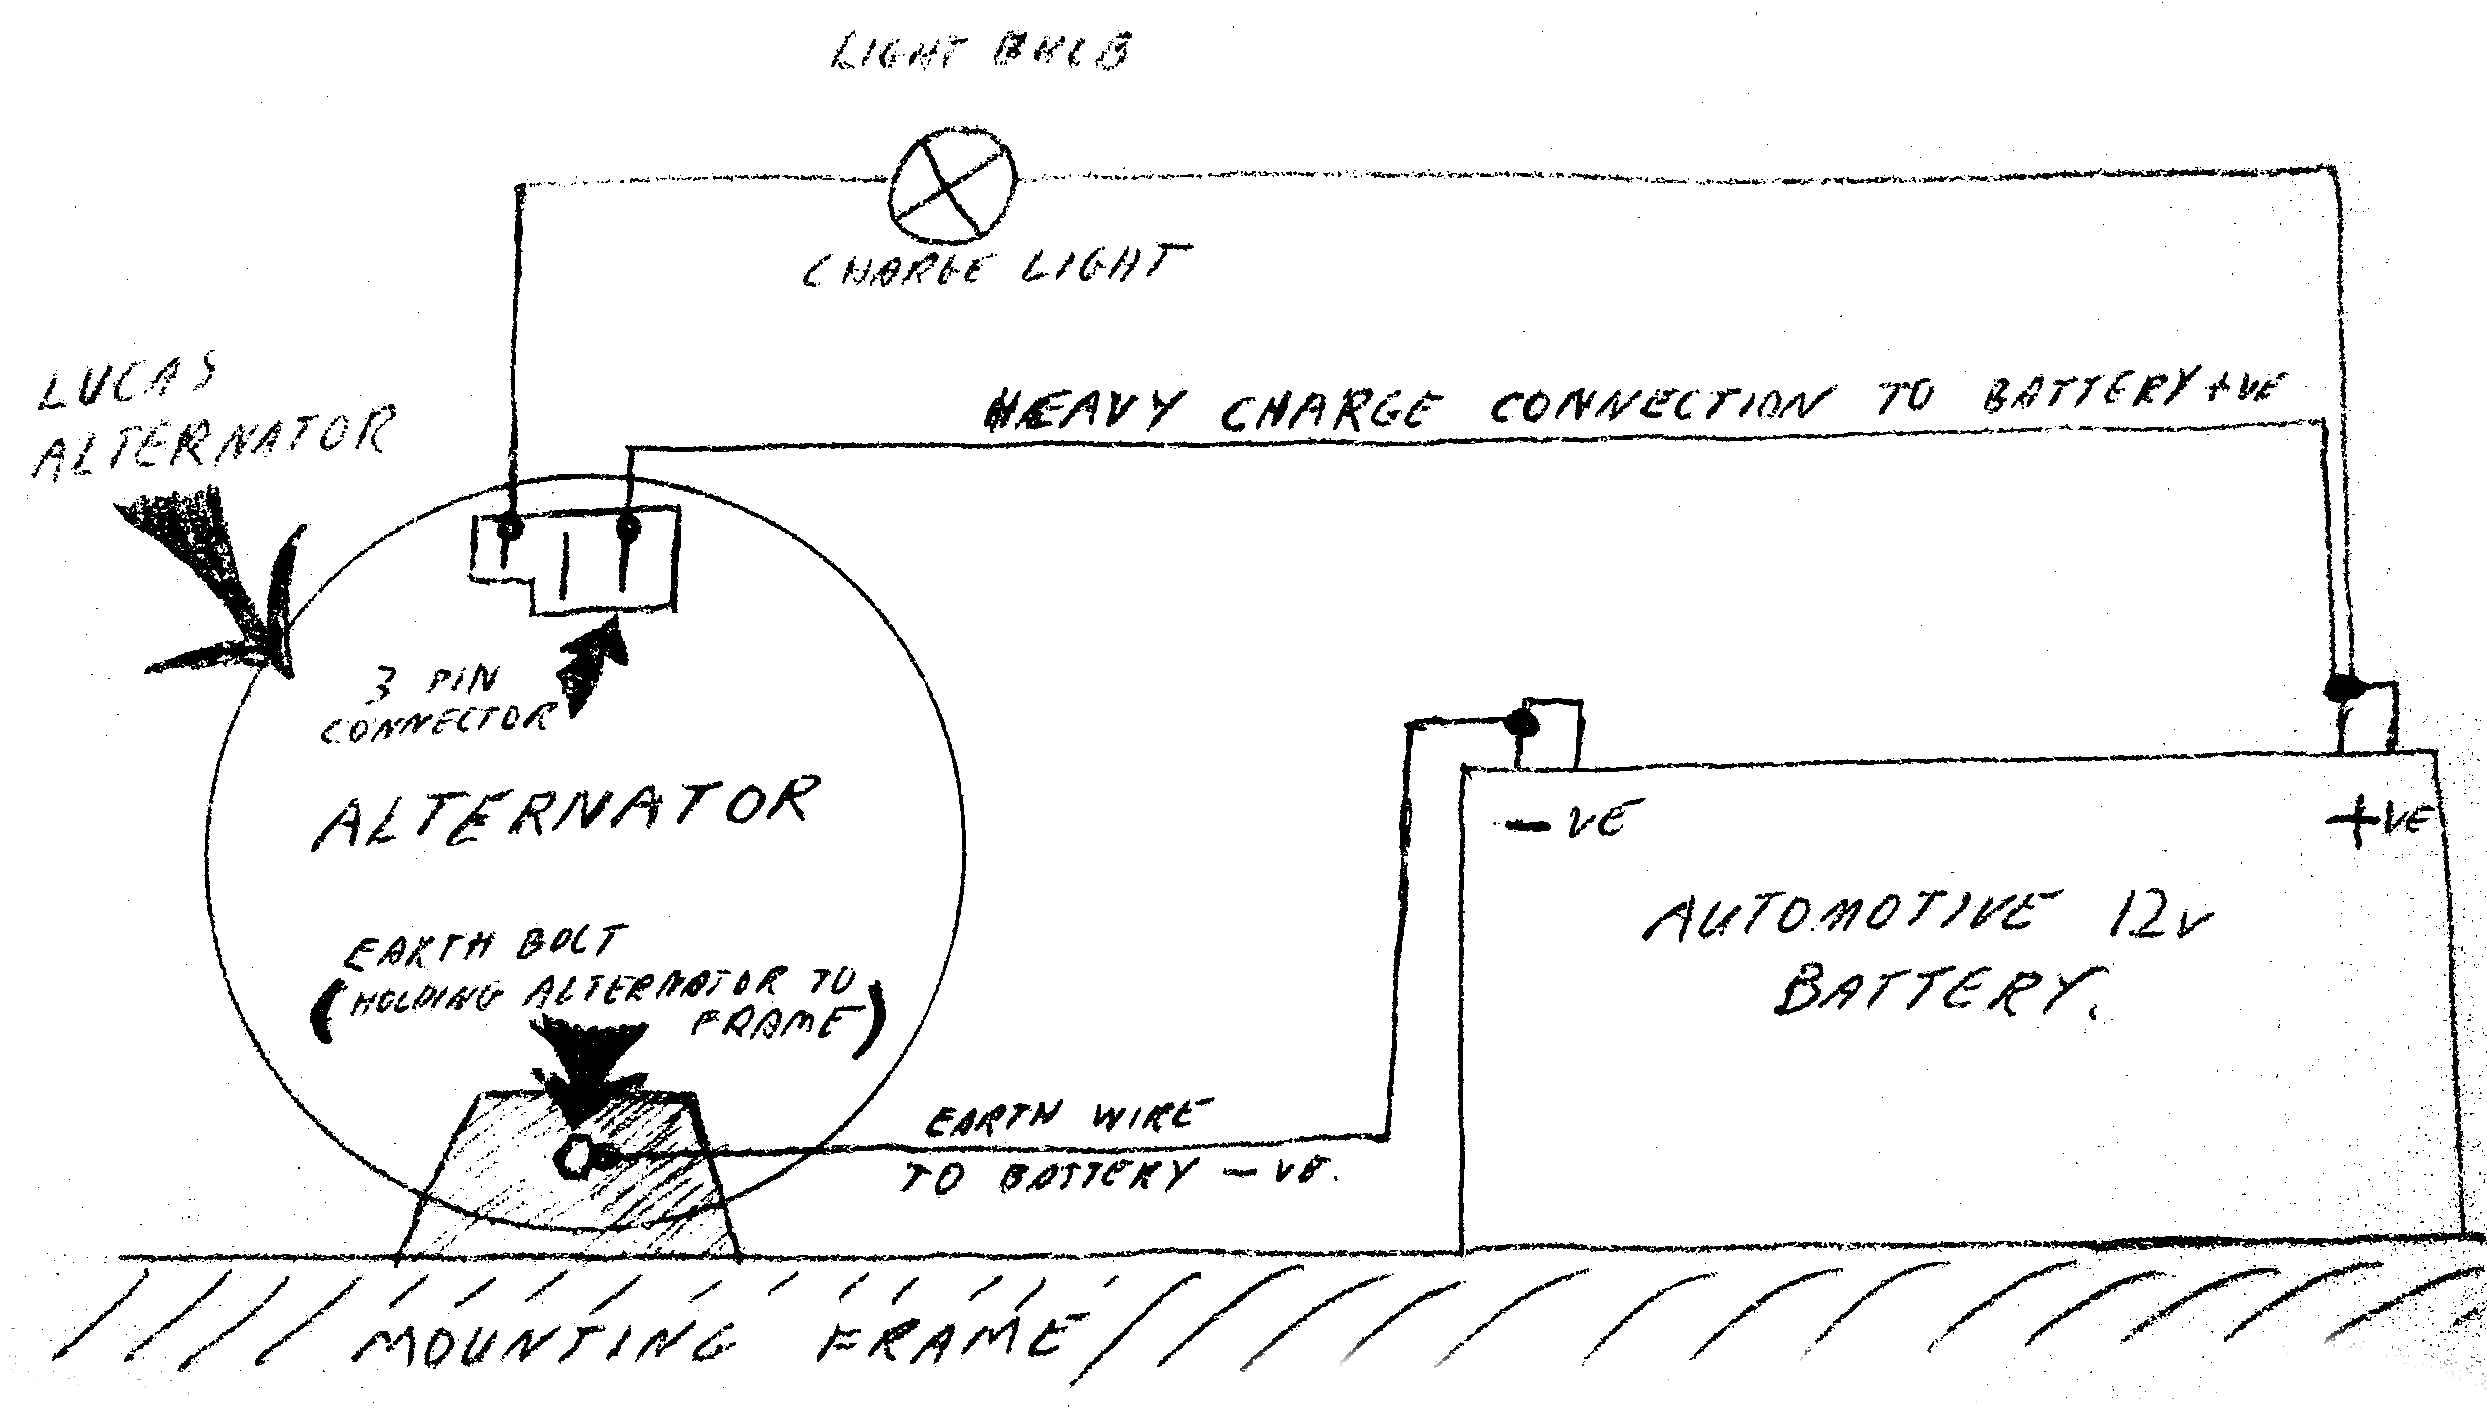 medium resolution of lucas alternator wiring diagram schematics diagramhow to set up an alternator with a stationary engine andy